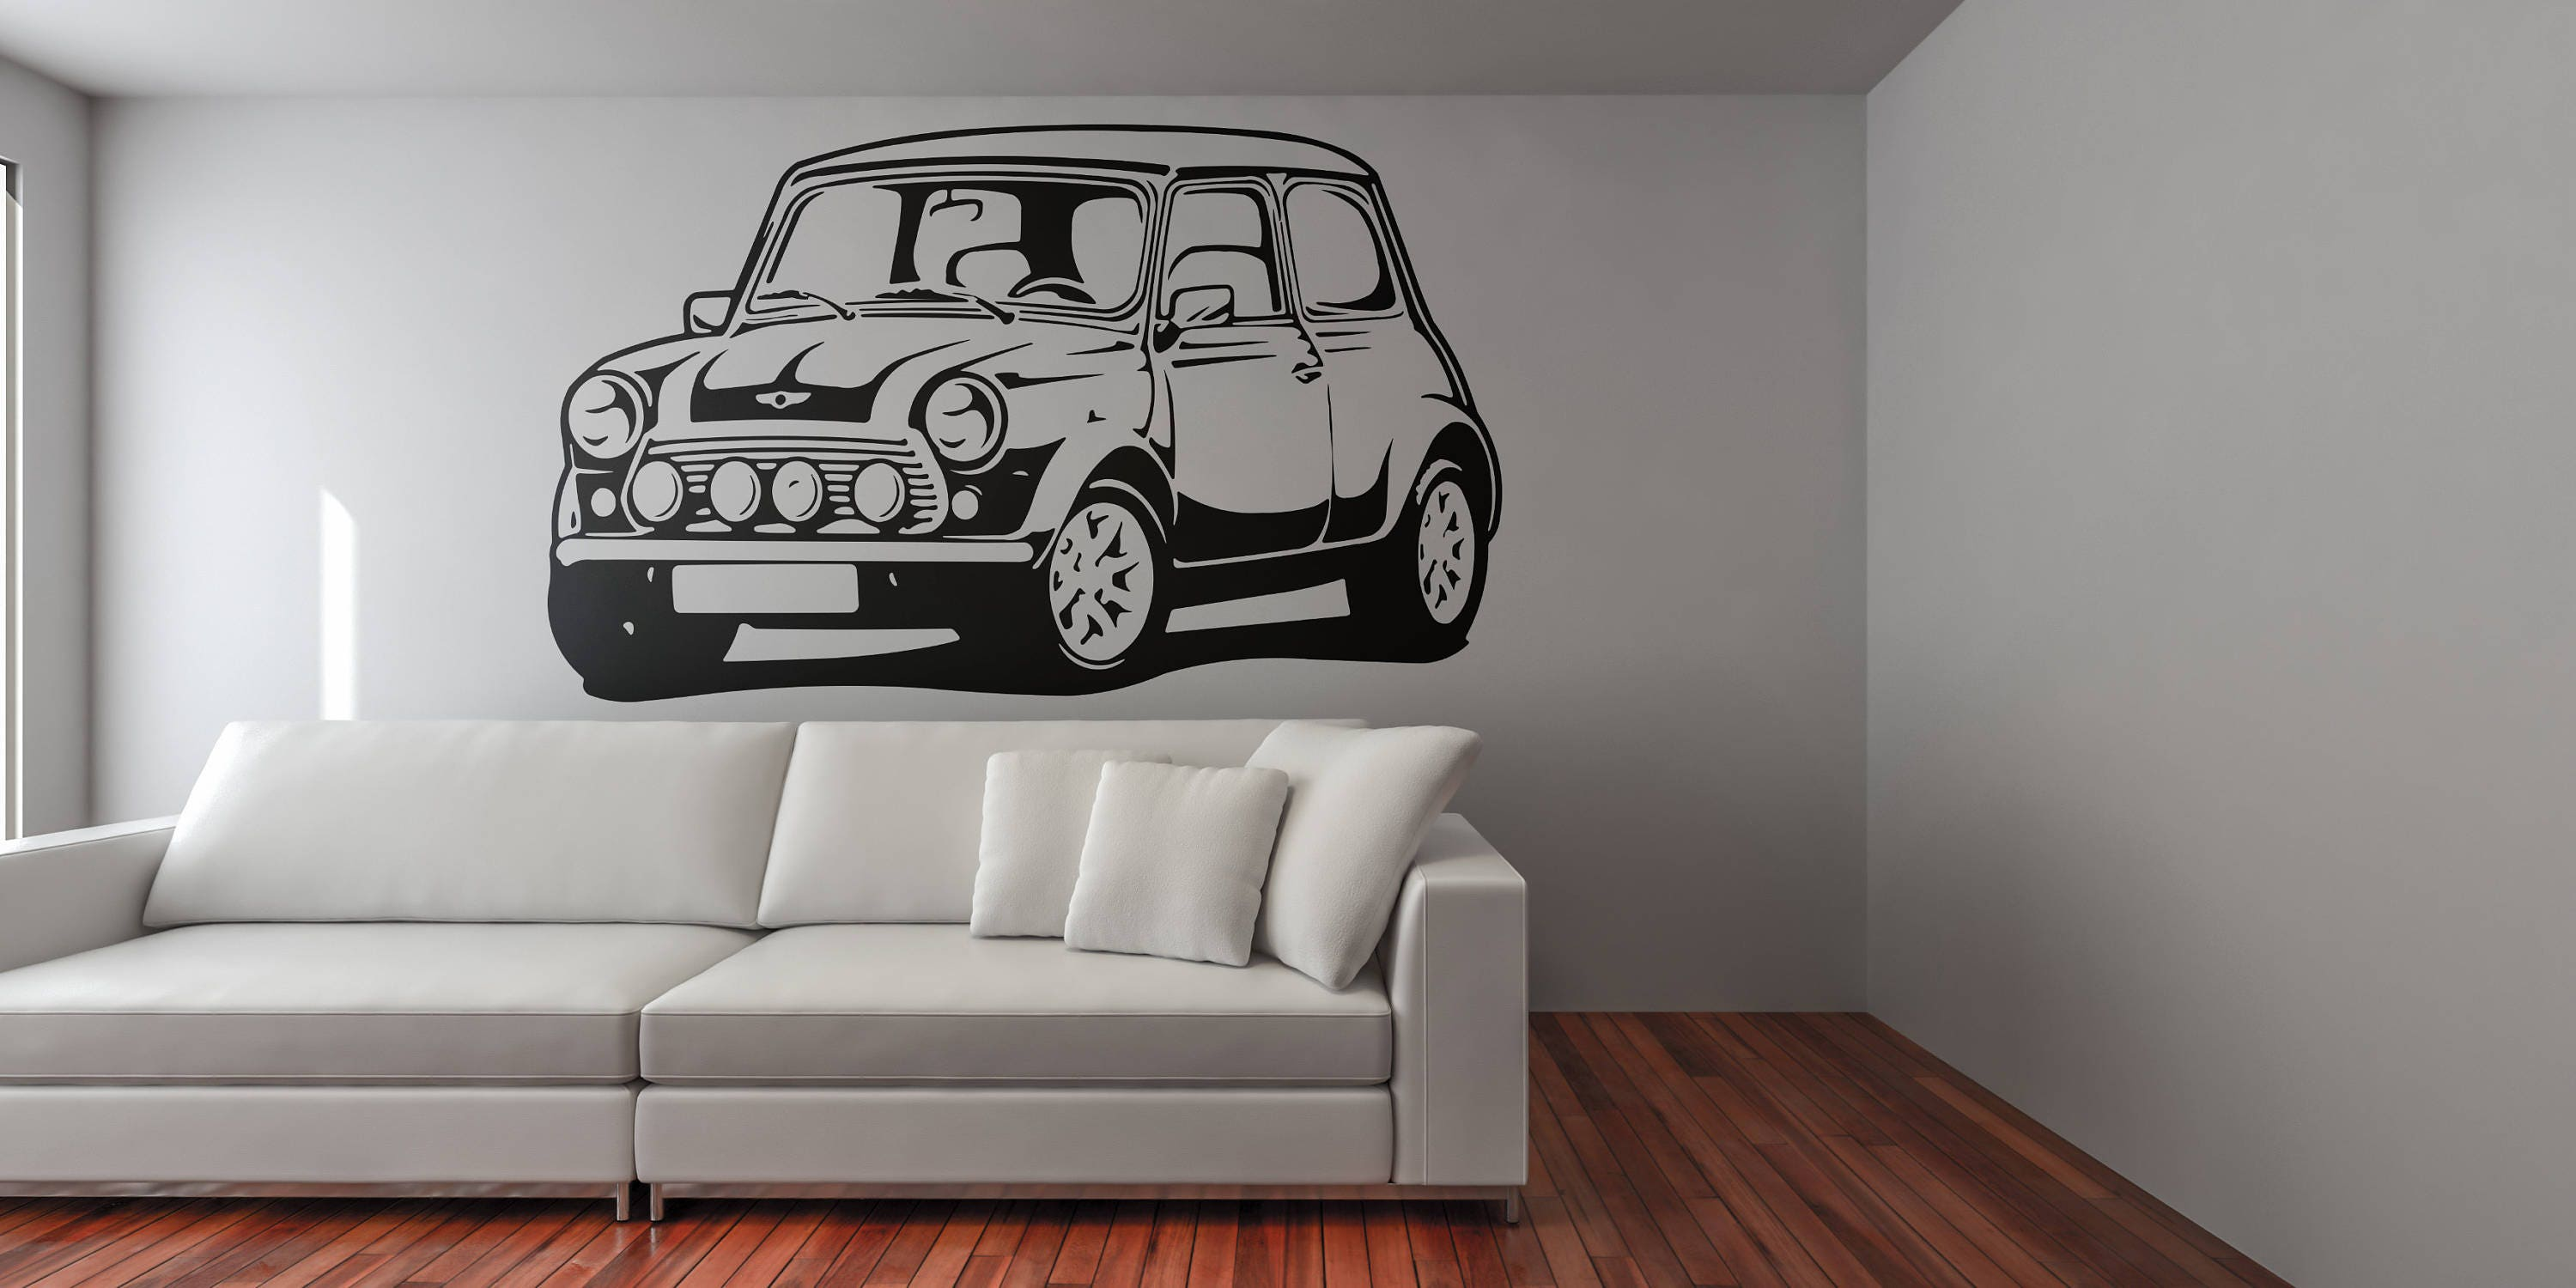 Mini classic car silhouette old vintage and iconic cars wall mini classic car silhouette old vintage and iconic cars wall decal sticker for home decor and improvement retro decals for car fans amipublicfo Images